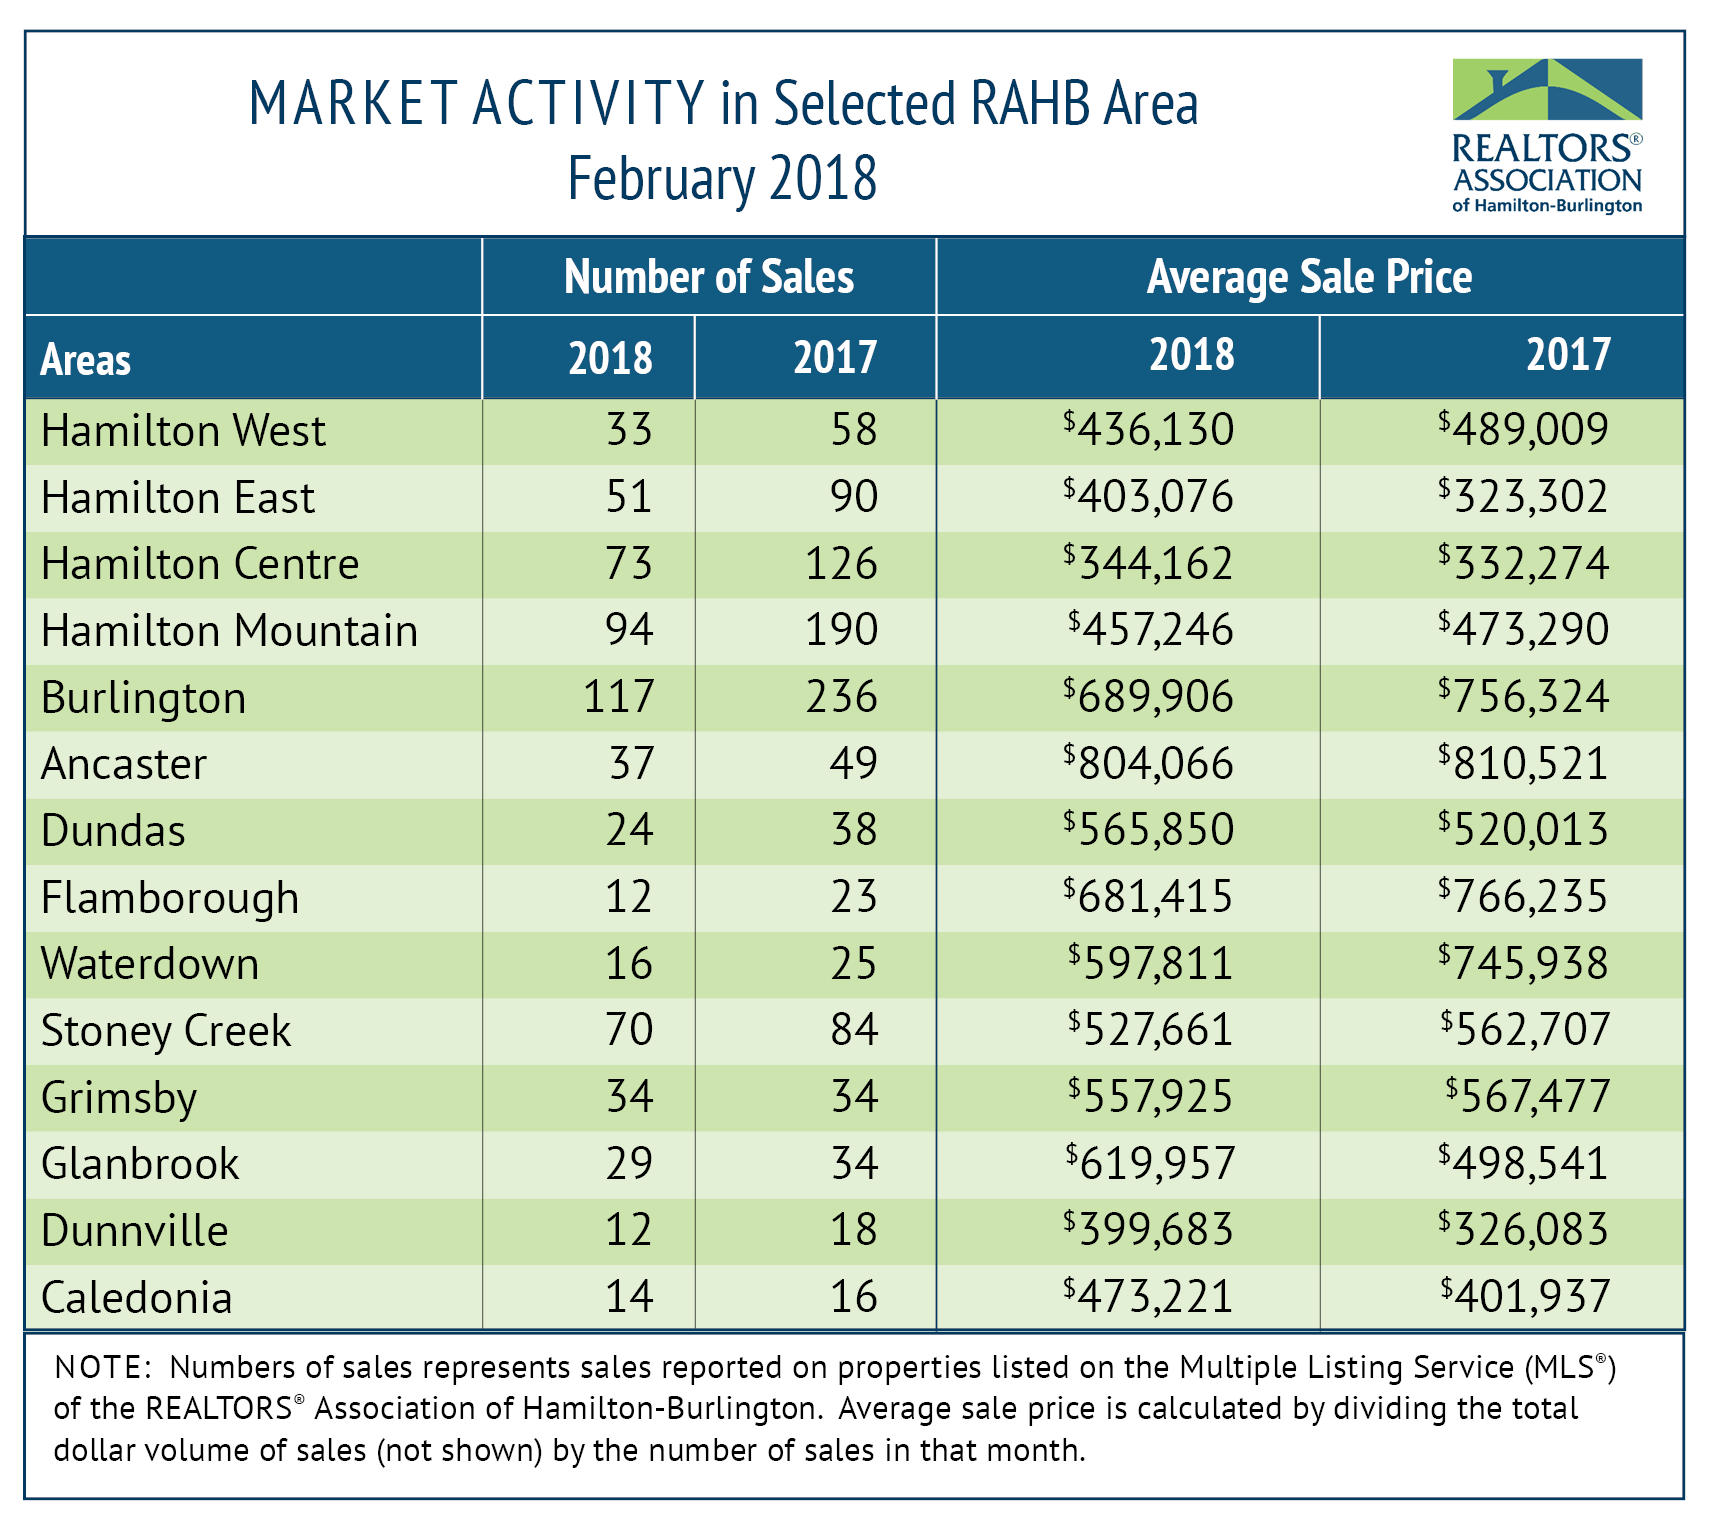 RAHB-Market-Activity-Feb-18